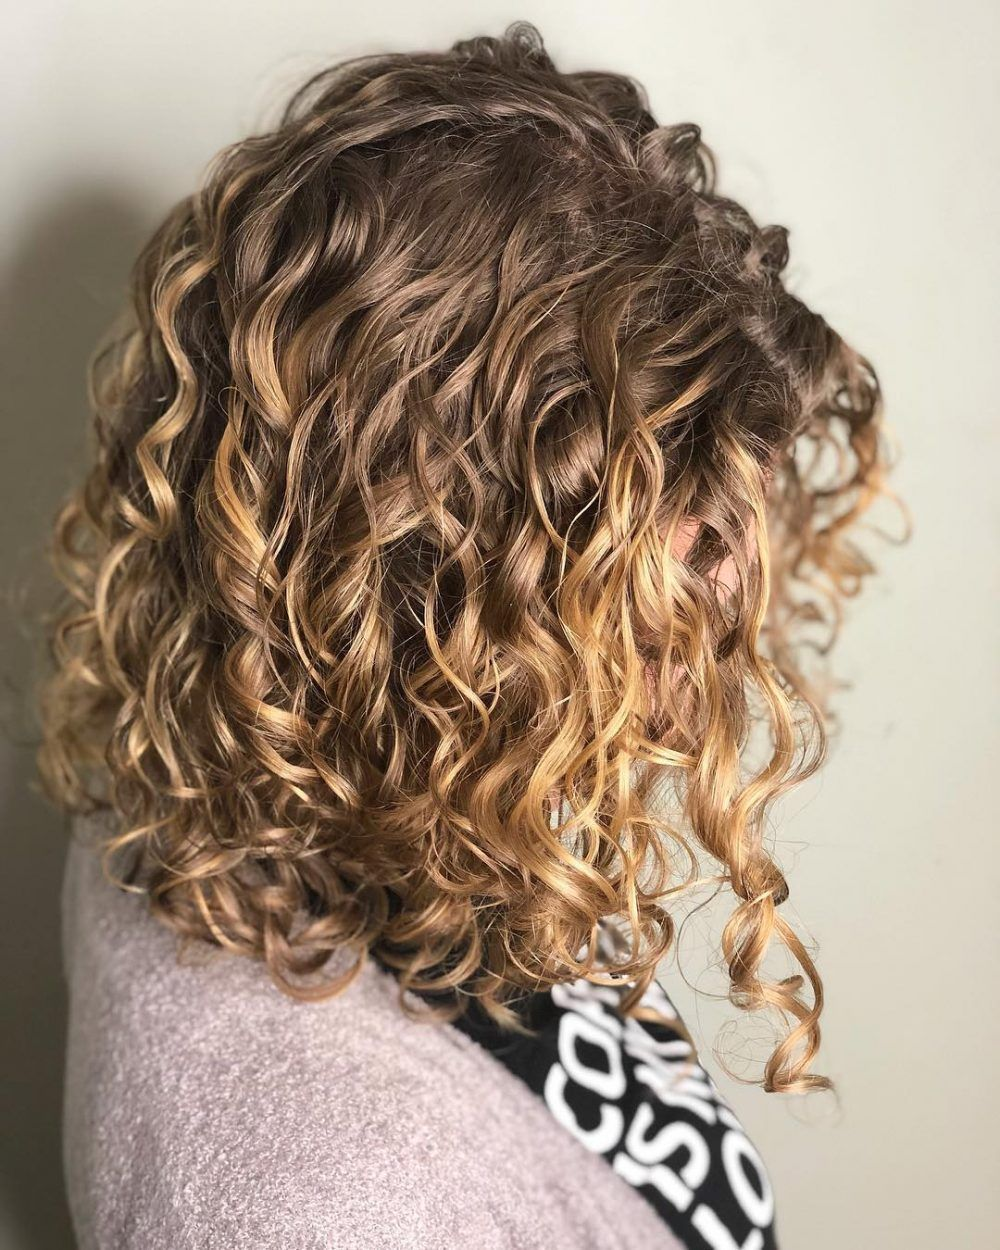 25 Best Shoulder Length Curly Hair Ideas 2020 Hairstyles Mid